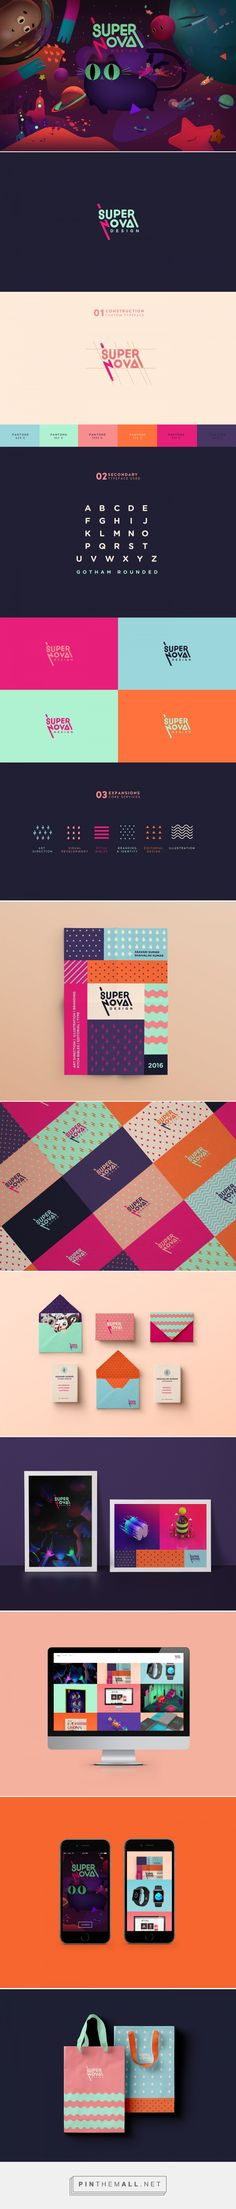 Supernova Design Branding on Behance | Fivestar Branding – Design and Branding Agency & Inspiration Gallery